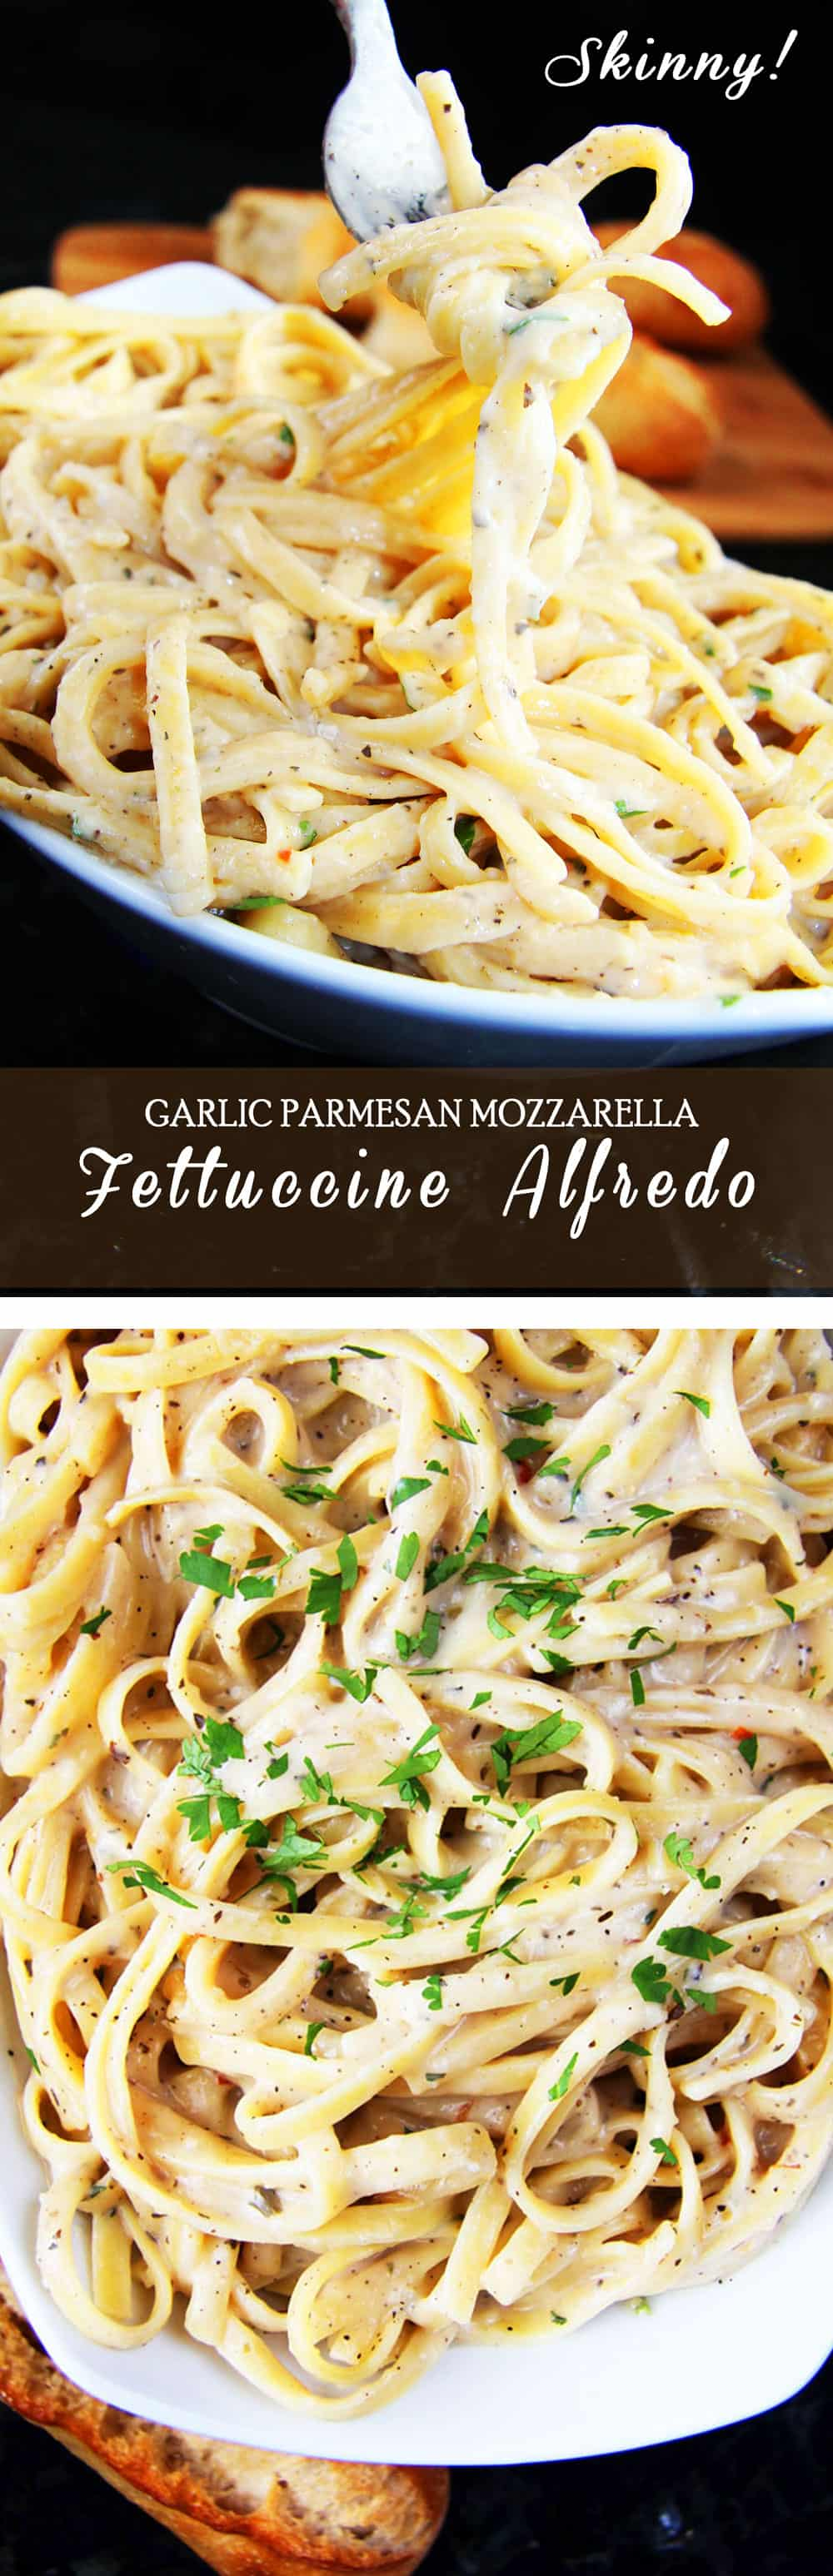 SKINNY Garlic Parmesan Mozzarella Alfredo. Rich and creamy without any butter, heavy cream or cream cheese!!! The pairing of both Parmesan cheese and mozzarella cheese adds a depth of flavor while complimented by garlic, basil, parsley and red pepper flakes